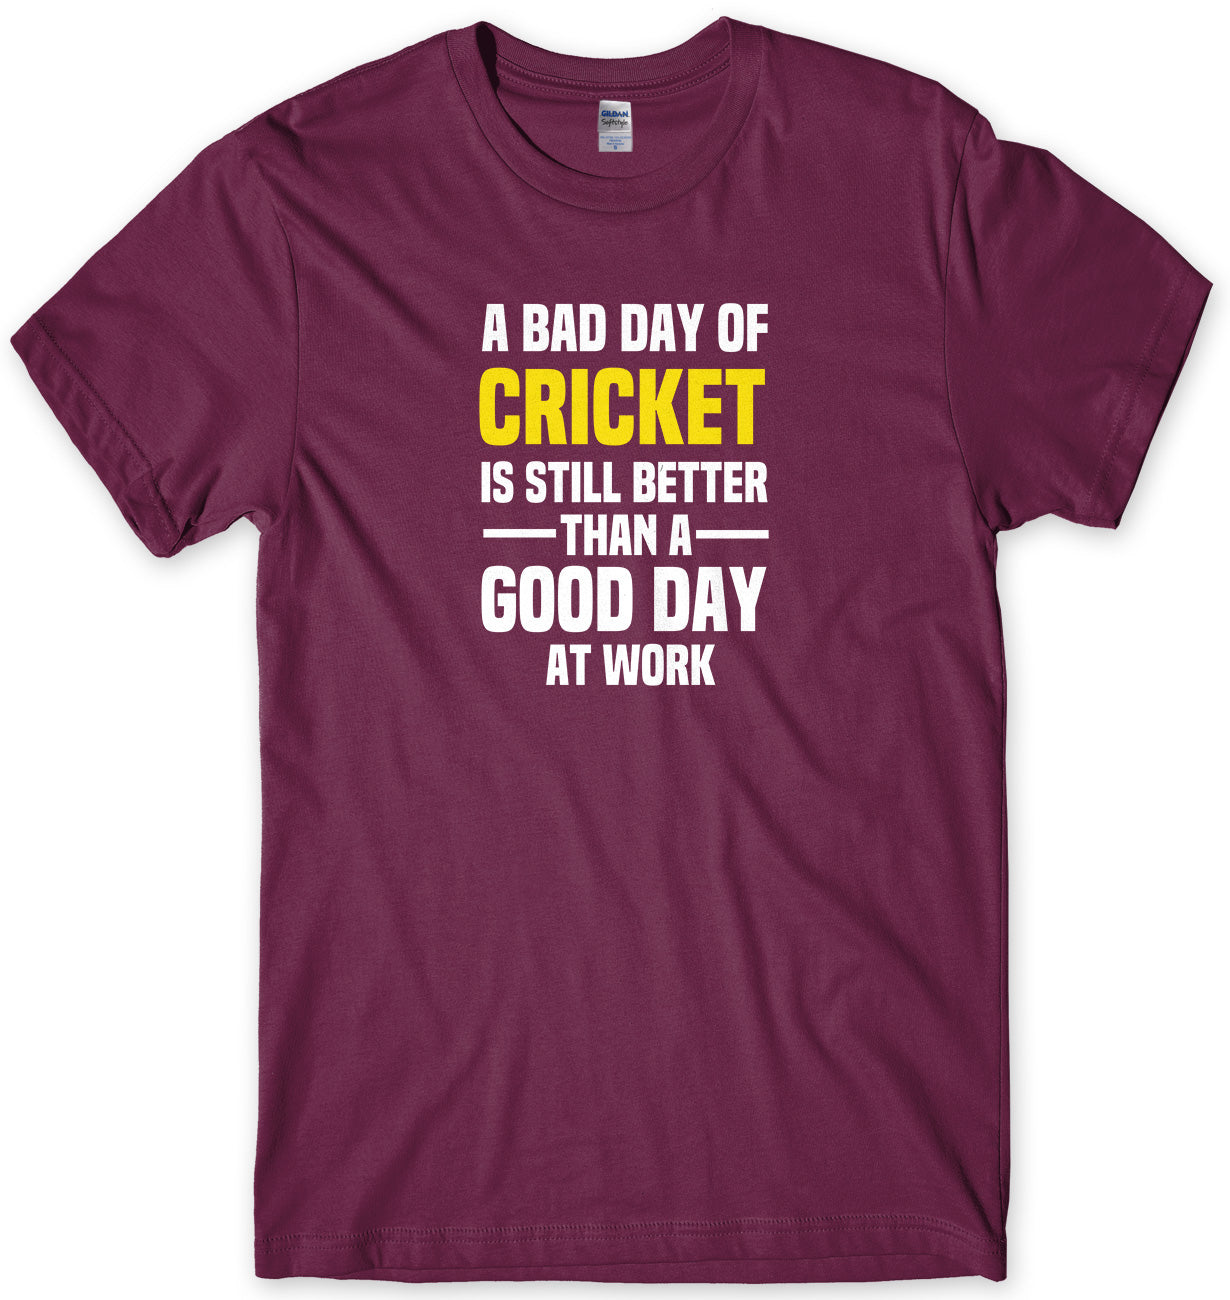 A BAD DAY OF CRICKET IS STILL BETTER THAN A GOOD DAY AT WORK MENS FUNNY SLOGAN UNISEX T-SHIRT - StreetSide Surgeons